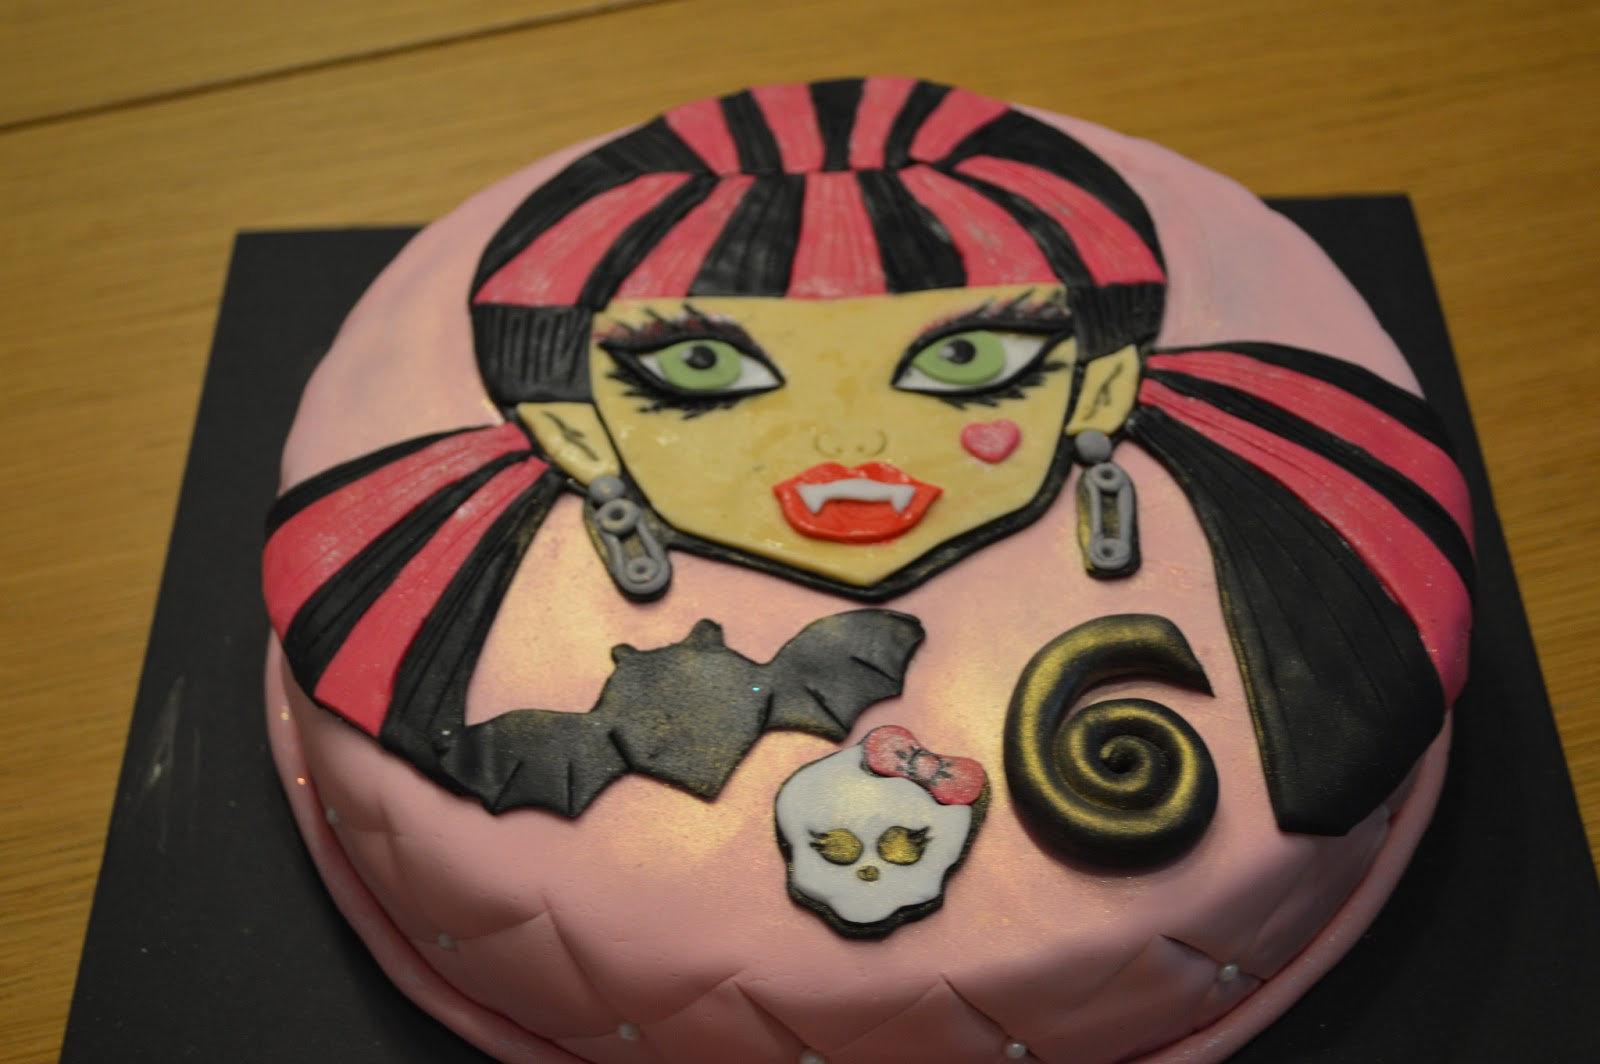 pastis fondant, monster high